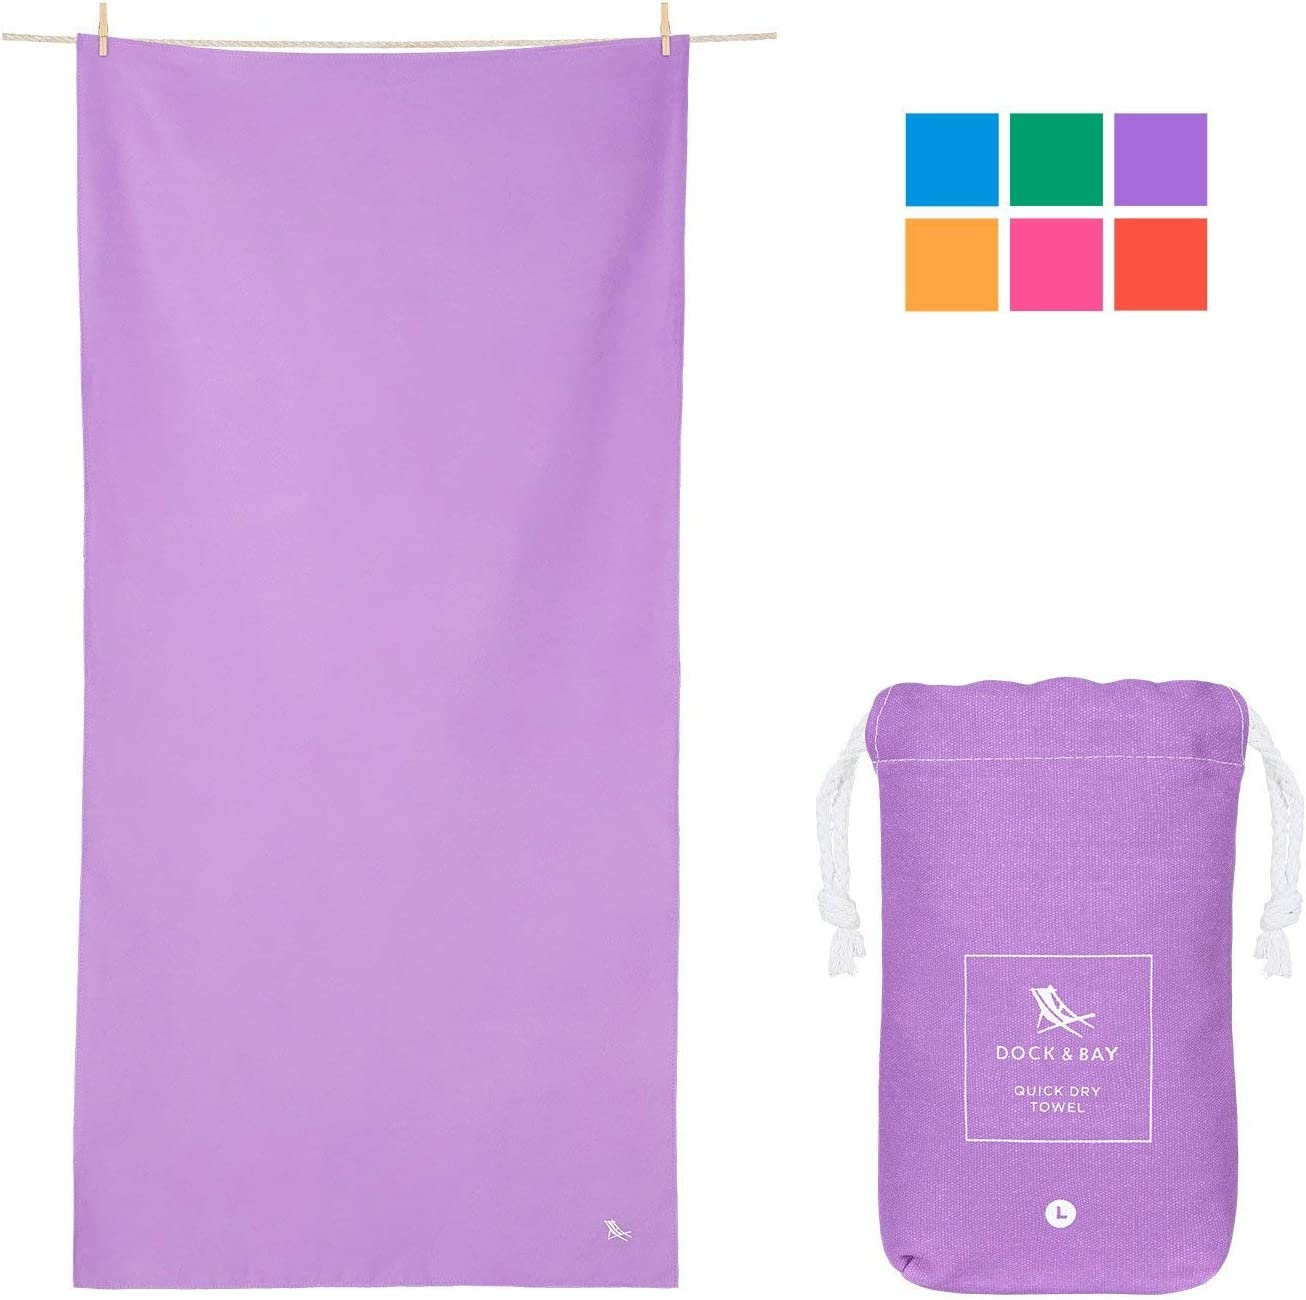 Dock & Bay Quick Drying Travel Towel - Patagonia Purple, 78 x 35 - Beach, Travel & Yoga - hot Yoga, Sports, Shower